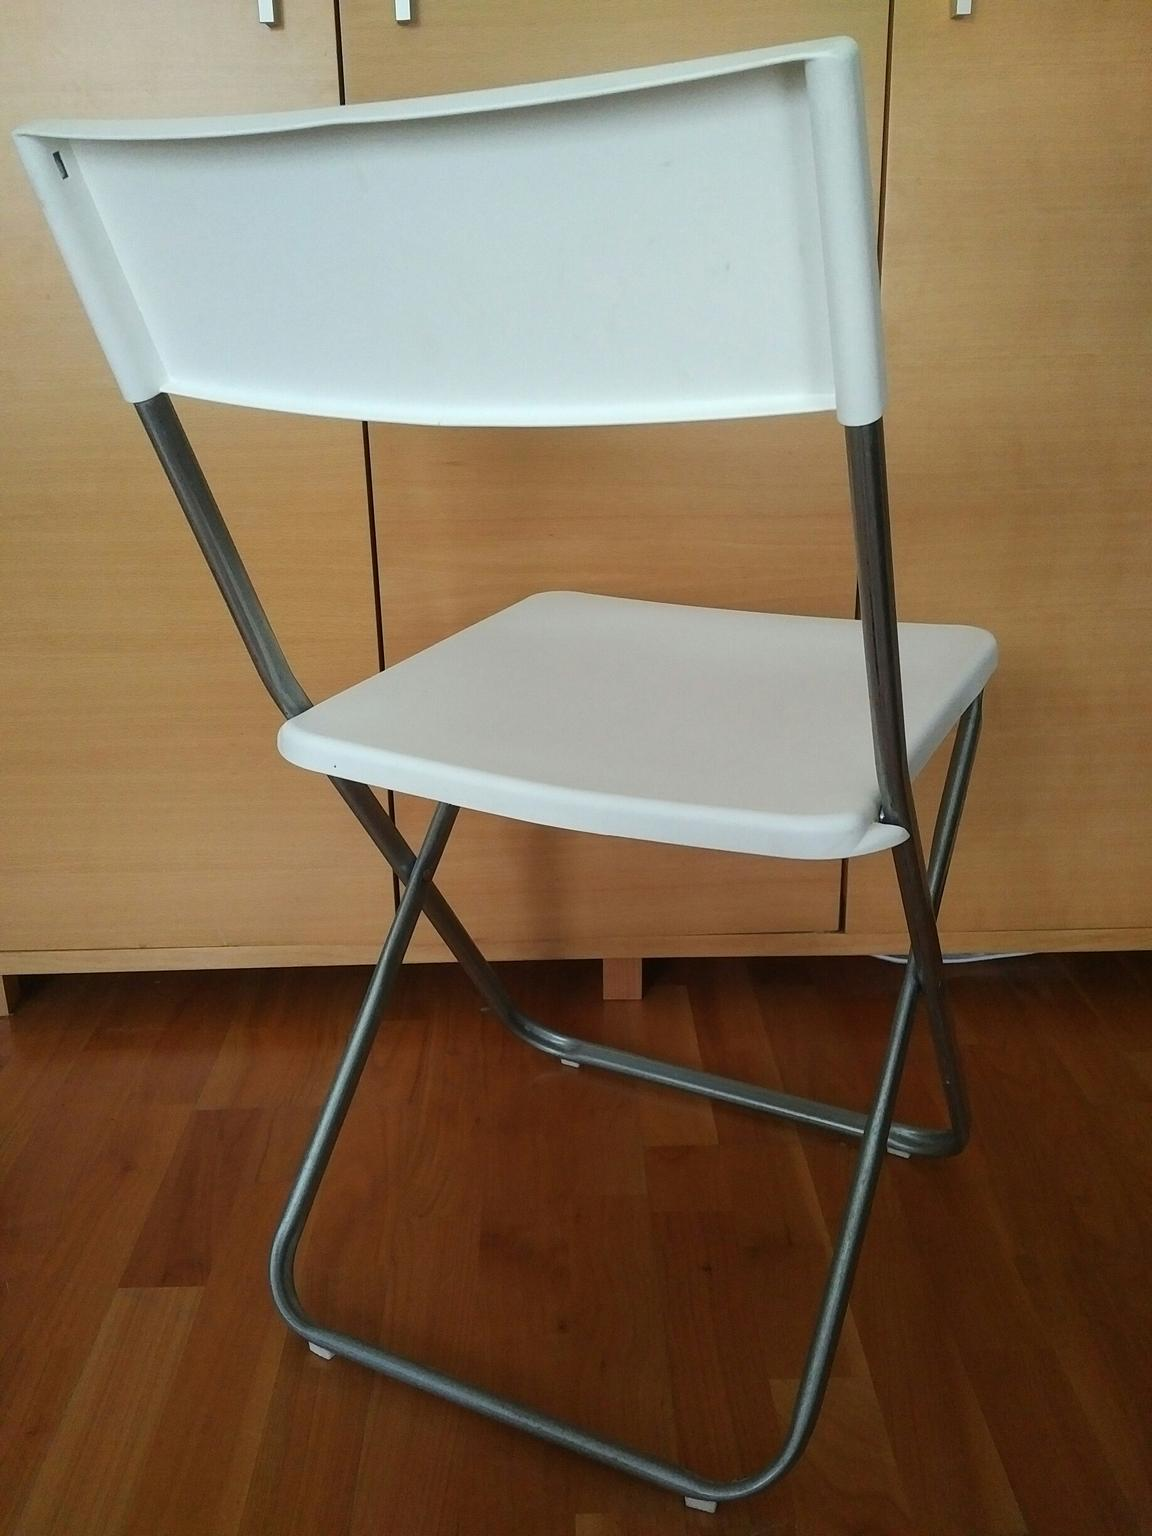 Groovy Ikea Folding Chair Pabps2019 Chair Design Images Pabps2019Com